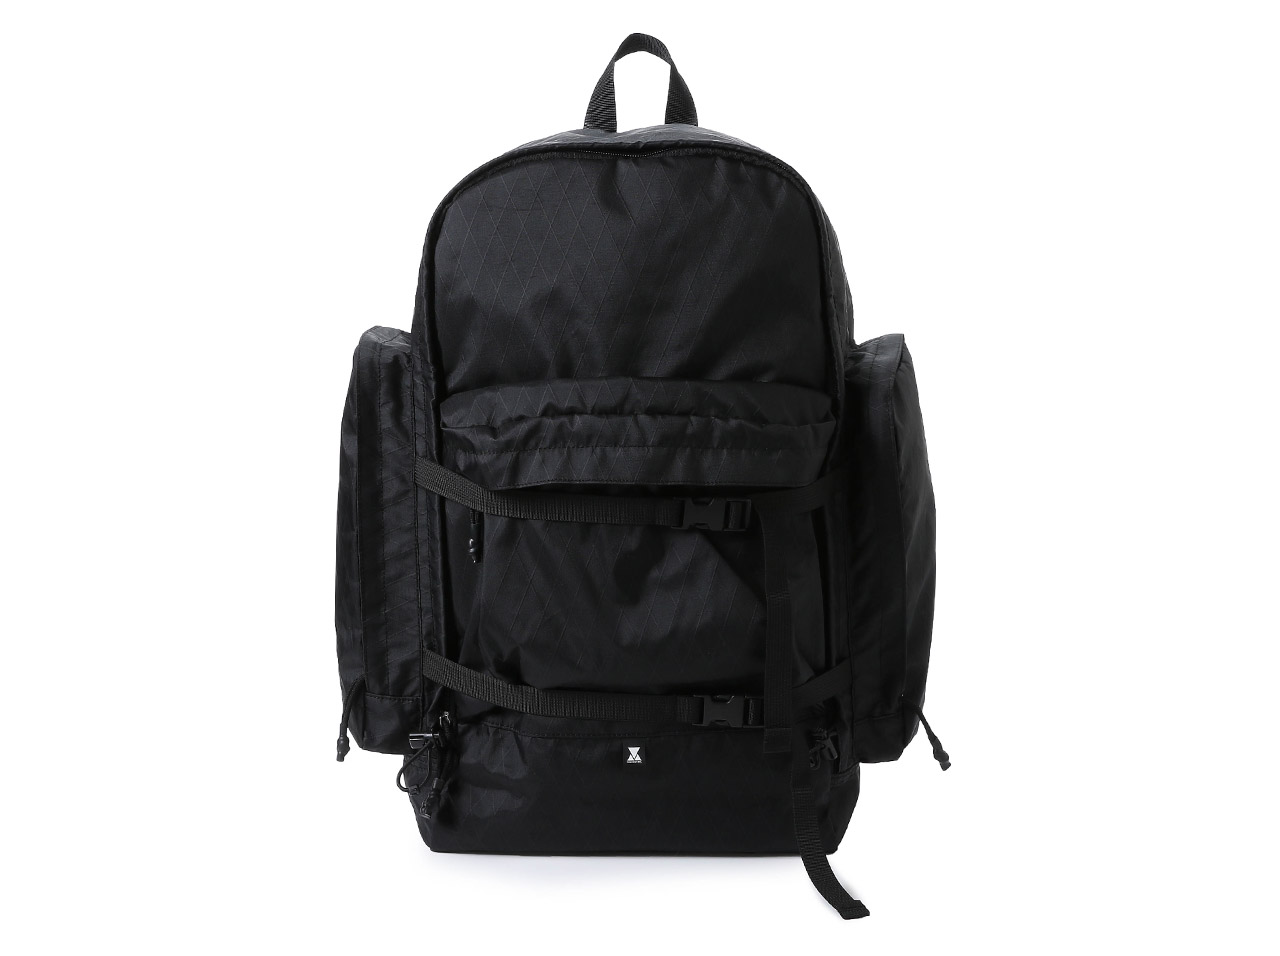 MAKAVELIC×T.S.O.P BACKPACK the 2nd(3109-10126)【マキャベリック×The Sound Of Post】【バッグ】【カバン】【バックパック】【リュック】【RICO】【コラボアイテム】【ミリタリー】【ストリート】